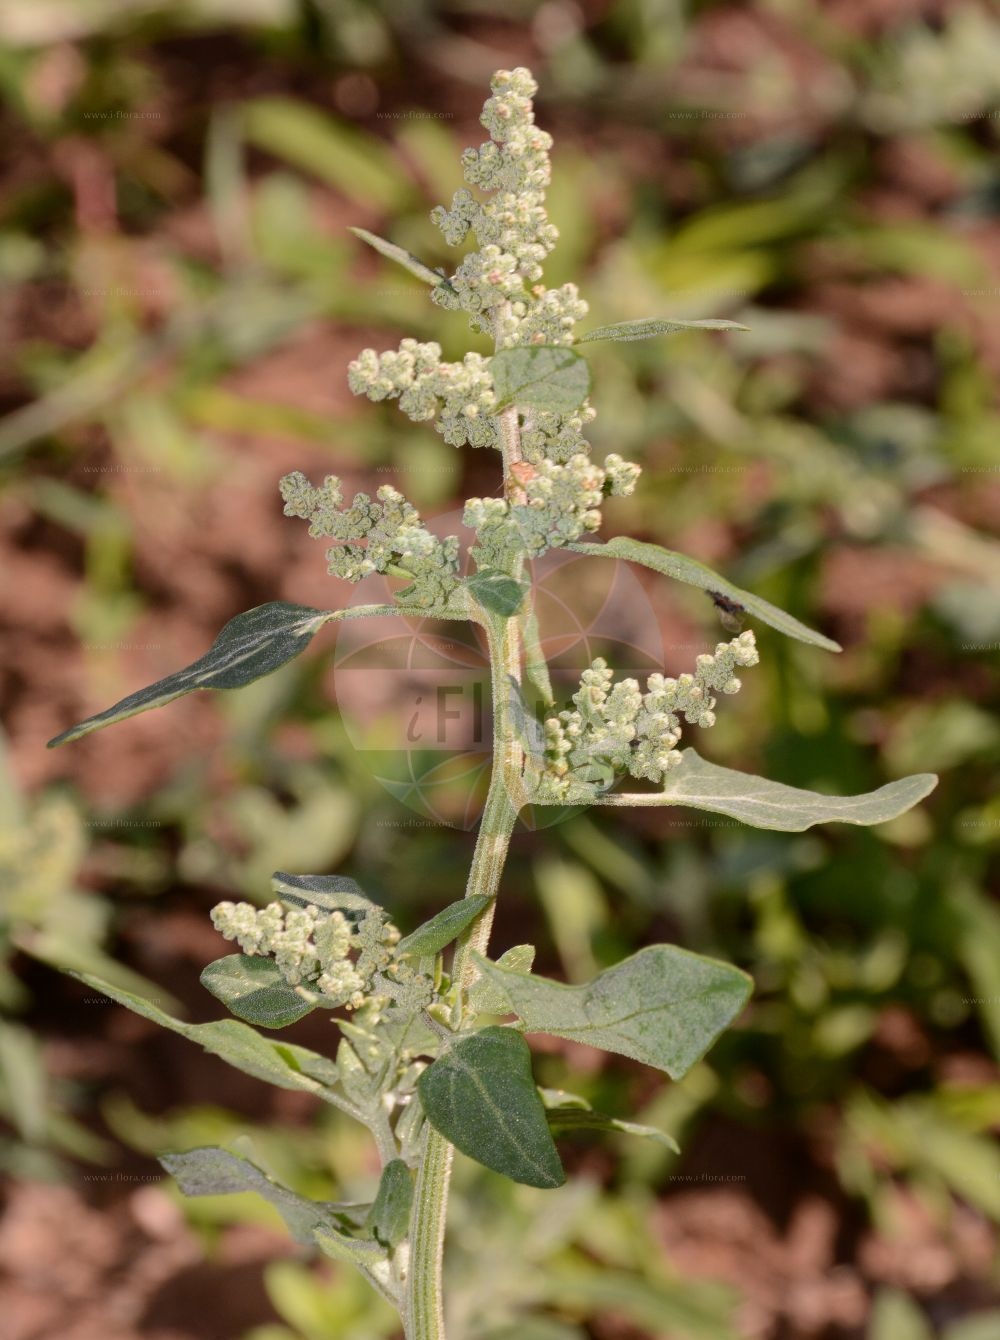 Foto von Chenopodium vulvaria (Stinkender Gaensefuss - Stinking Goosefoot). Das Foto wurde in Mainz, Rheinland-Pfalz, Deutschland aufgenommen. ---- Photo of Chenopodium vulvaria (Stinkender Gaensefuss - Stinking Goosefoot).The picture was taken in Mainz, Rhineland-Palatinate, Germany.(Chenopodium vulvaria,Stinkender Gaensefuss,Stinking Goosefoot,Chenopodium foetidum,Chenopodium olidum,,Chenopodium,Gaensefuss,Goosefoot,Amaranthaceae,Fuchsschwanzgewaechse,Pigweed family)